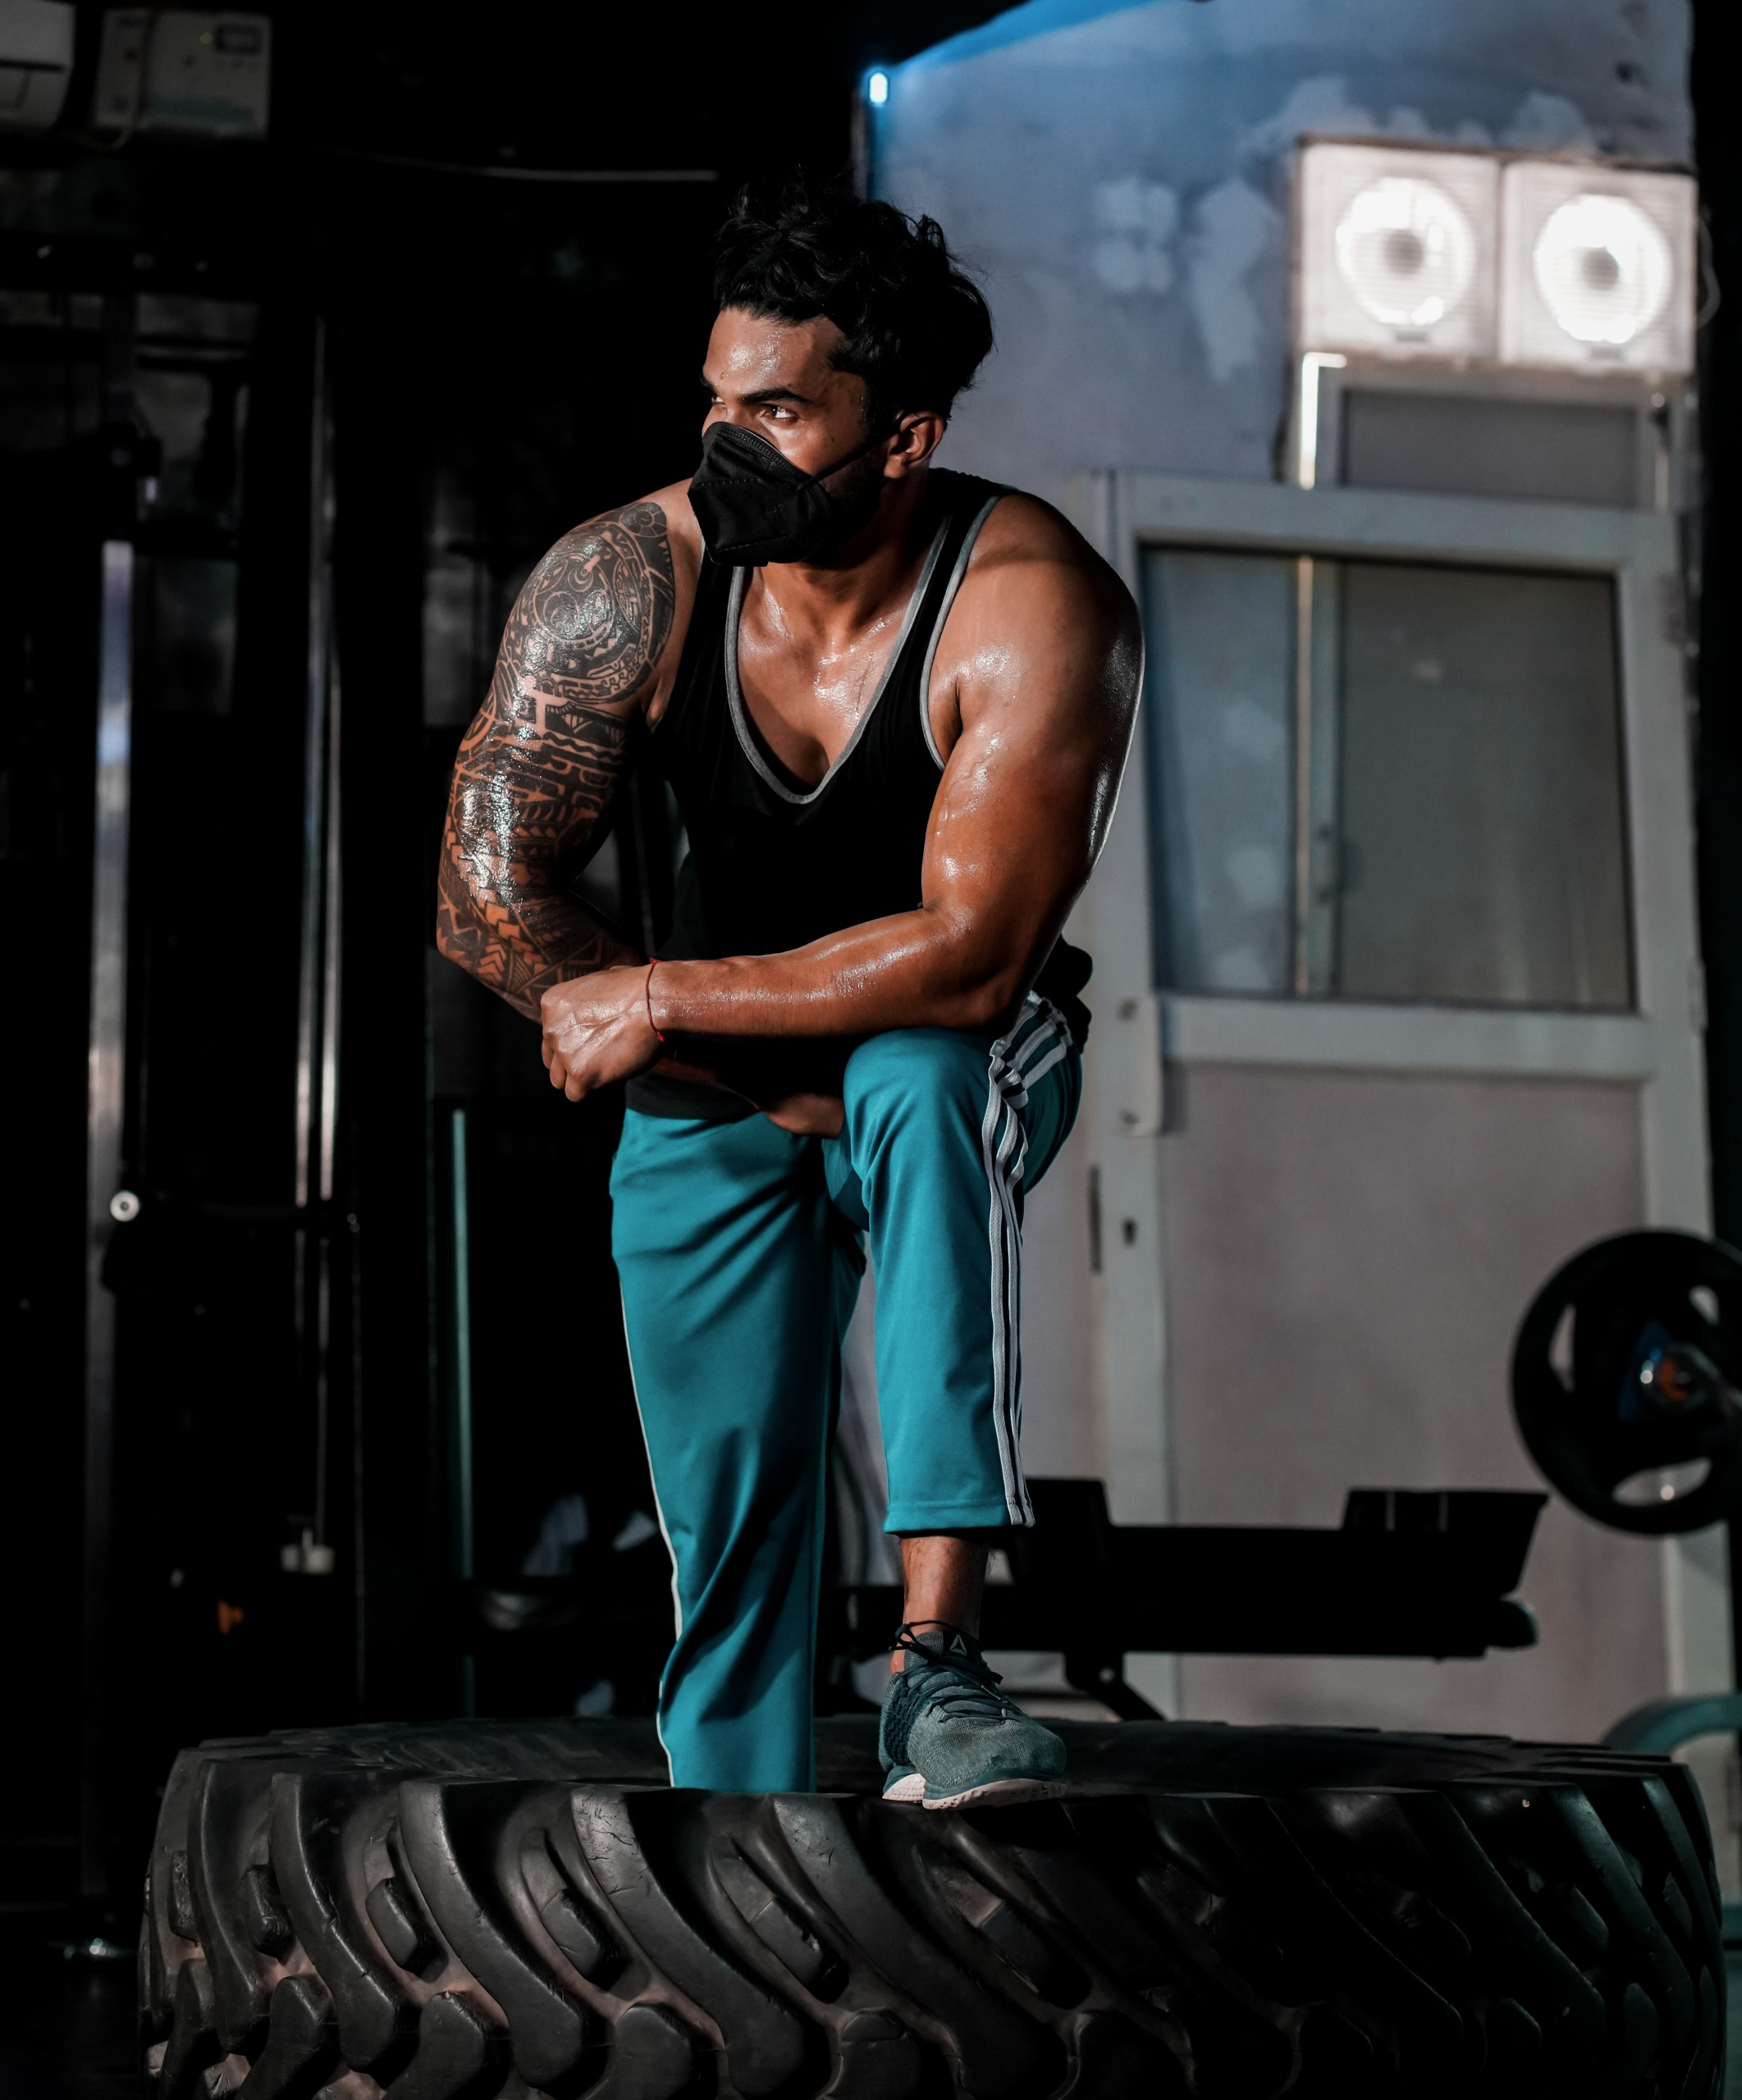 Fit Man Pose on Tire in the Gym